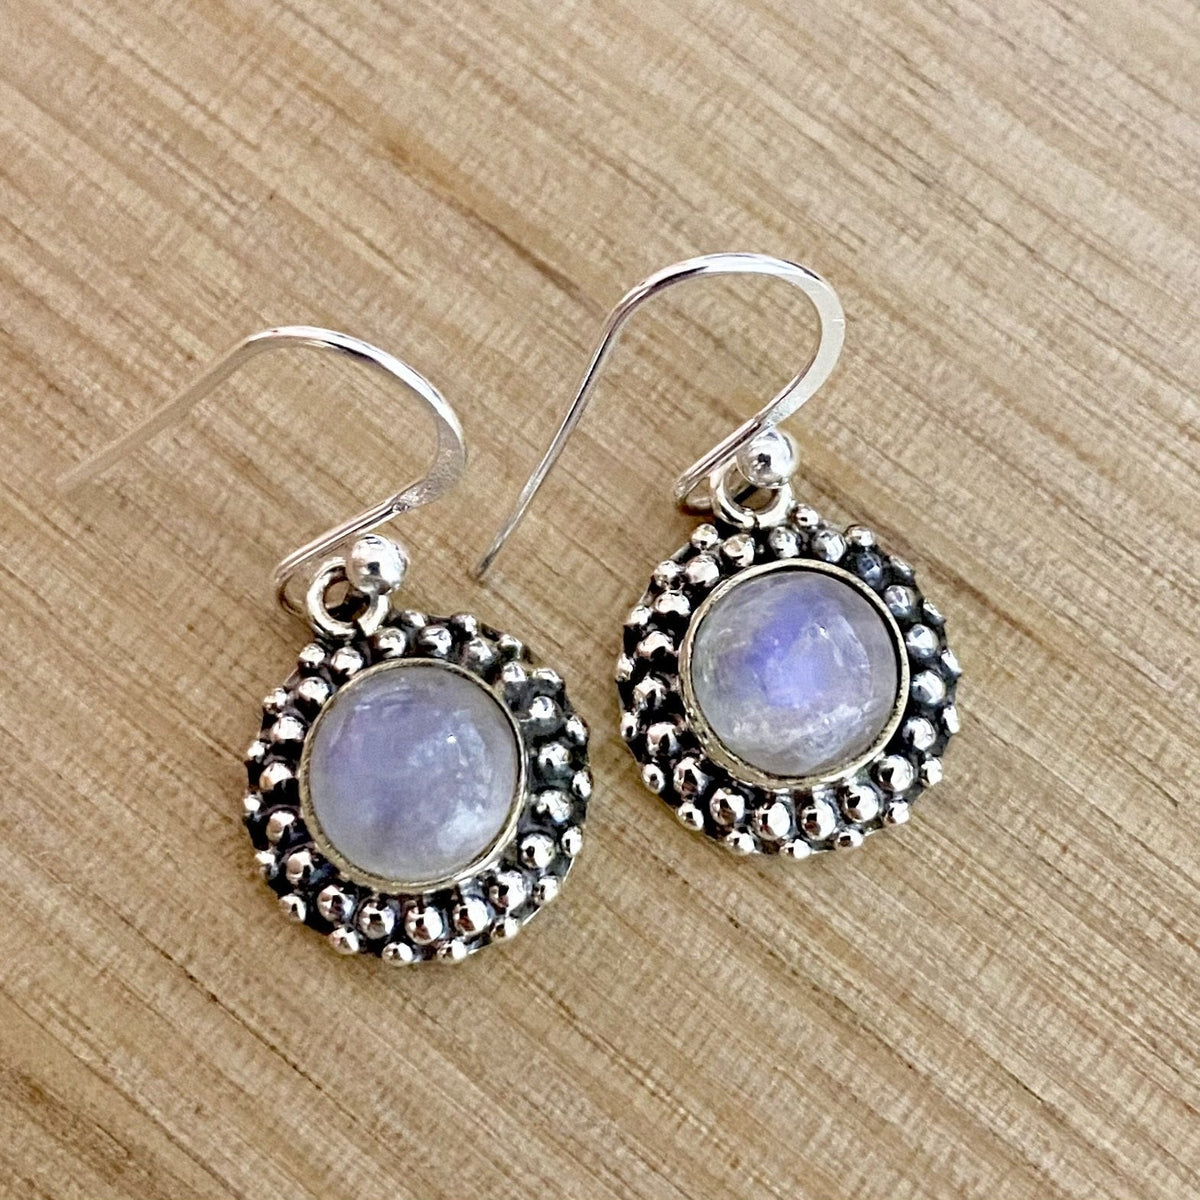 Laihas Spring Time Moonstone Earrings - Laihas Bohemian Dreaming